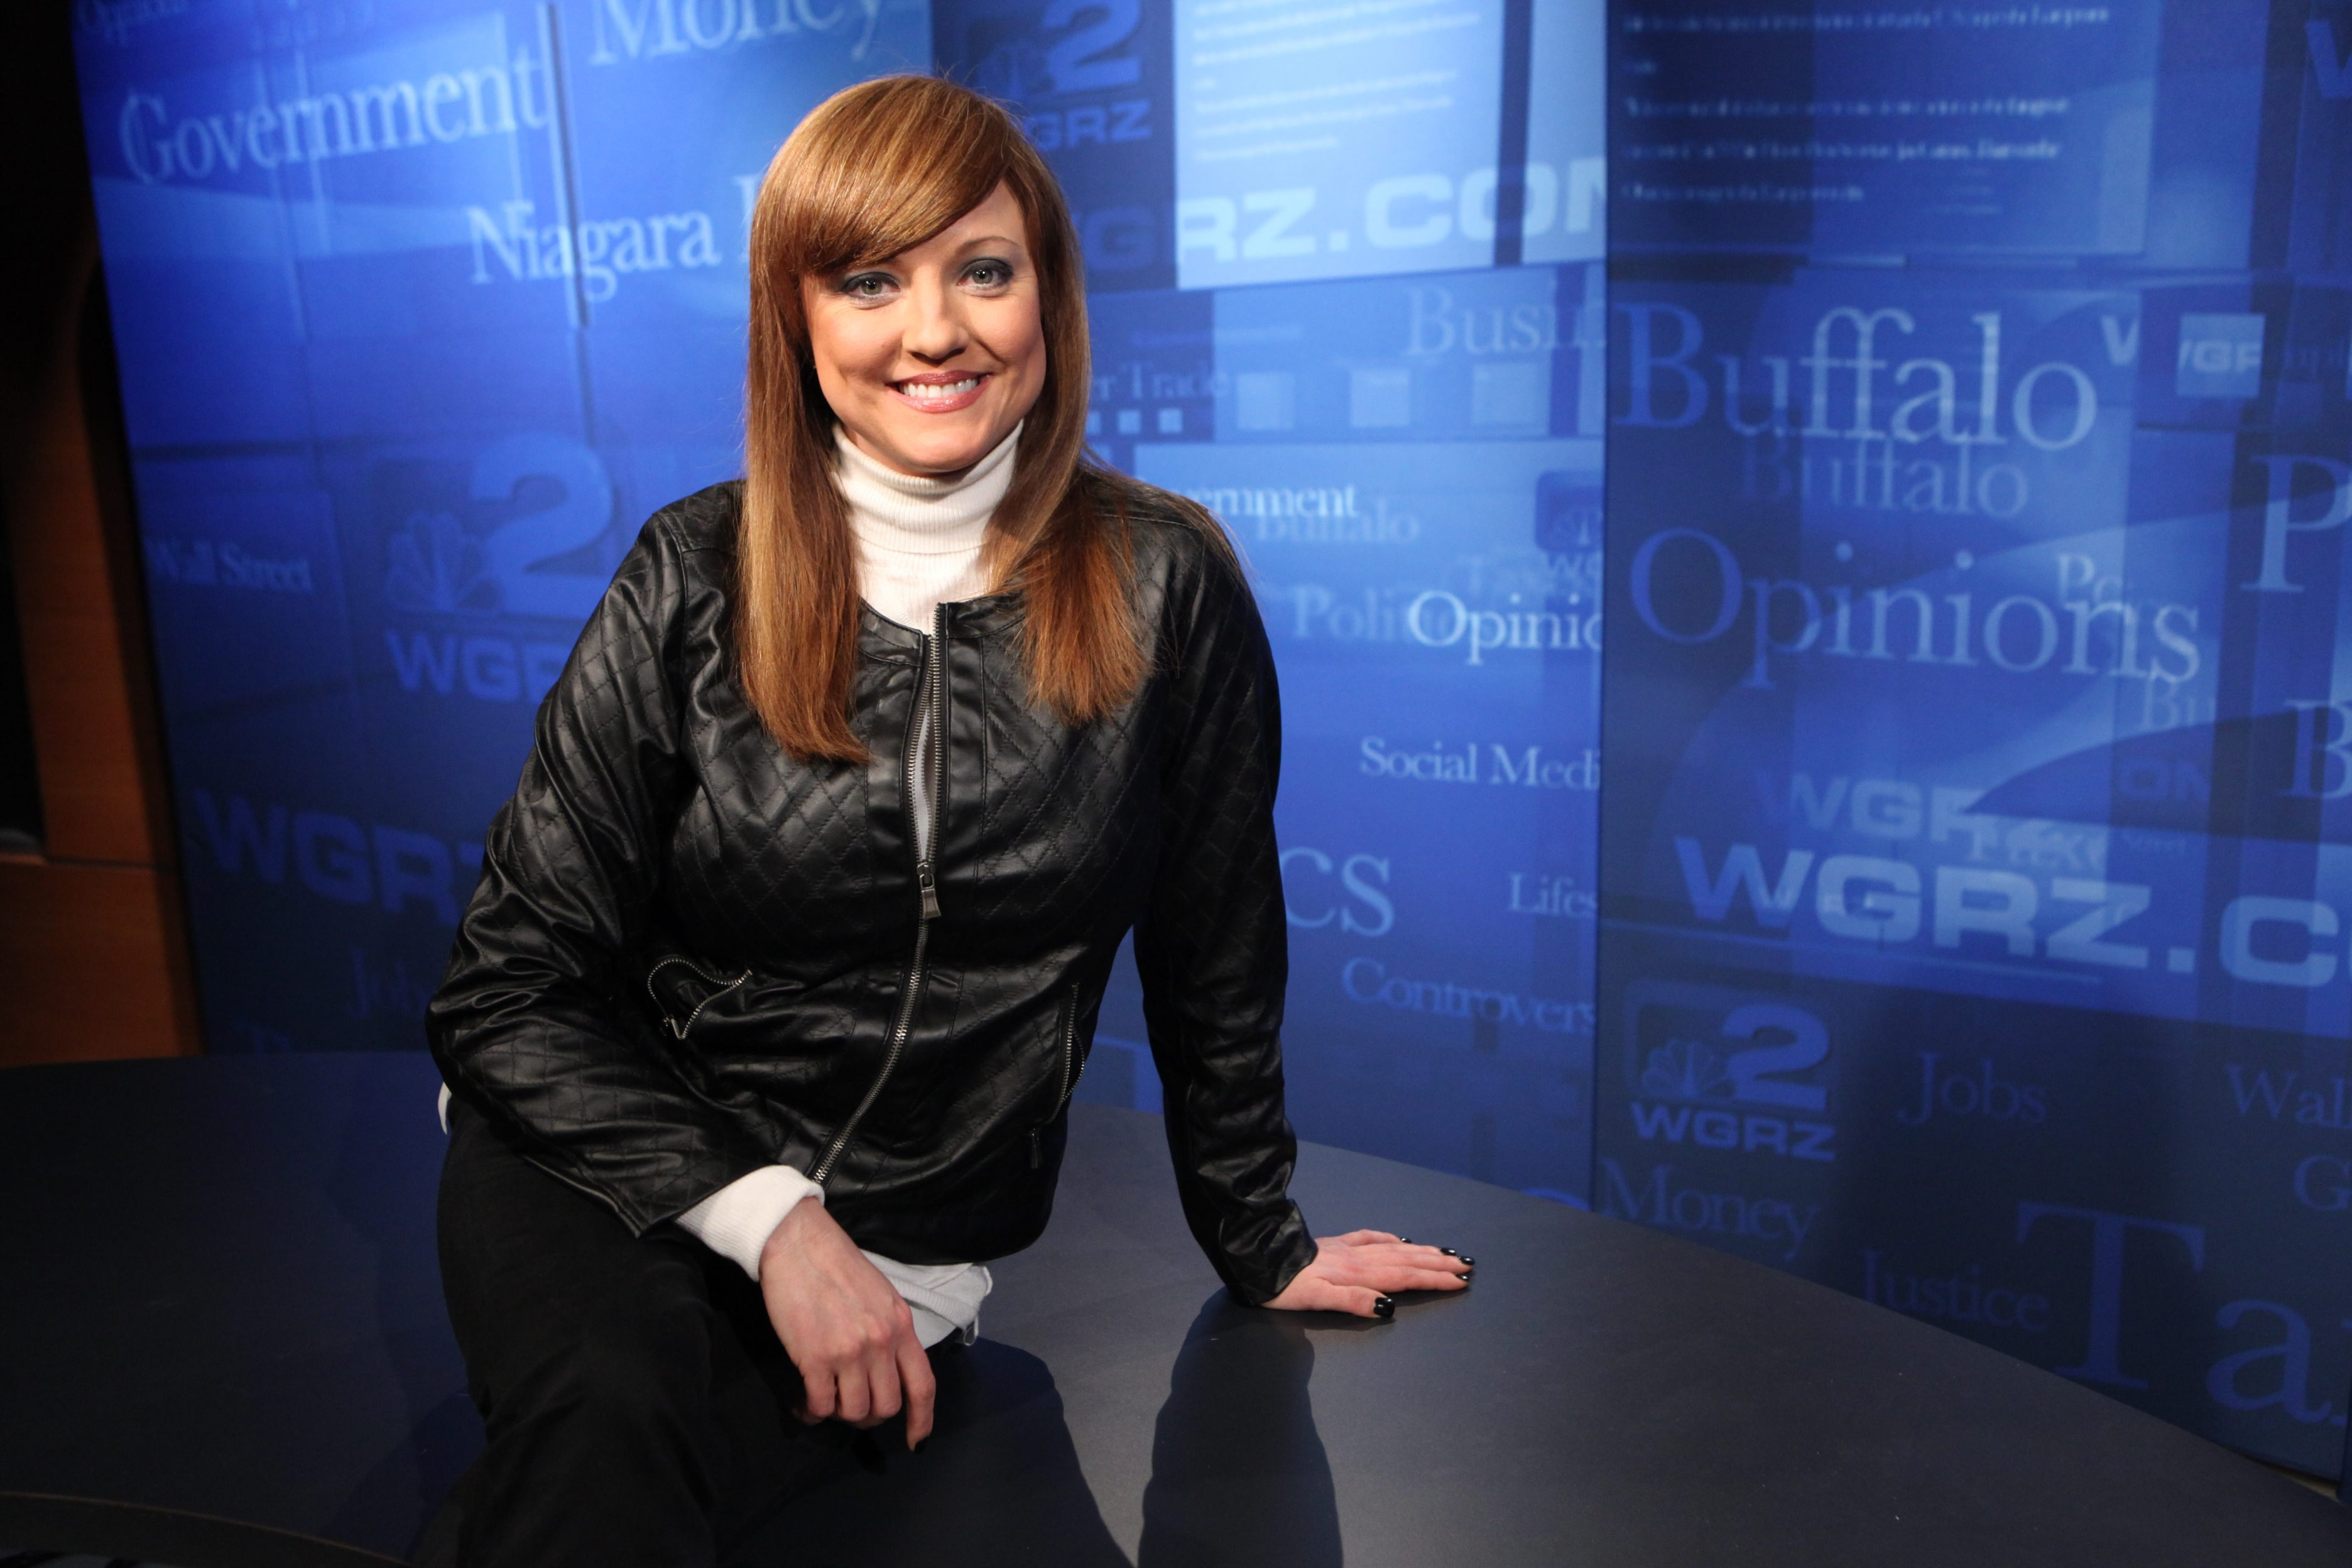 Kristy Mazurek, photographed in 2012 on WGRZ set for show '2 Sides,' is expected to run for Angela Wozniak's Assembly seat. (Sharon Cantillon / Buffalo News)